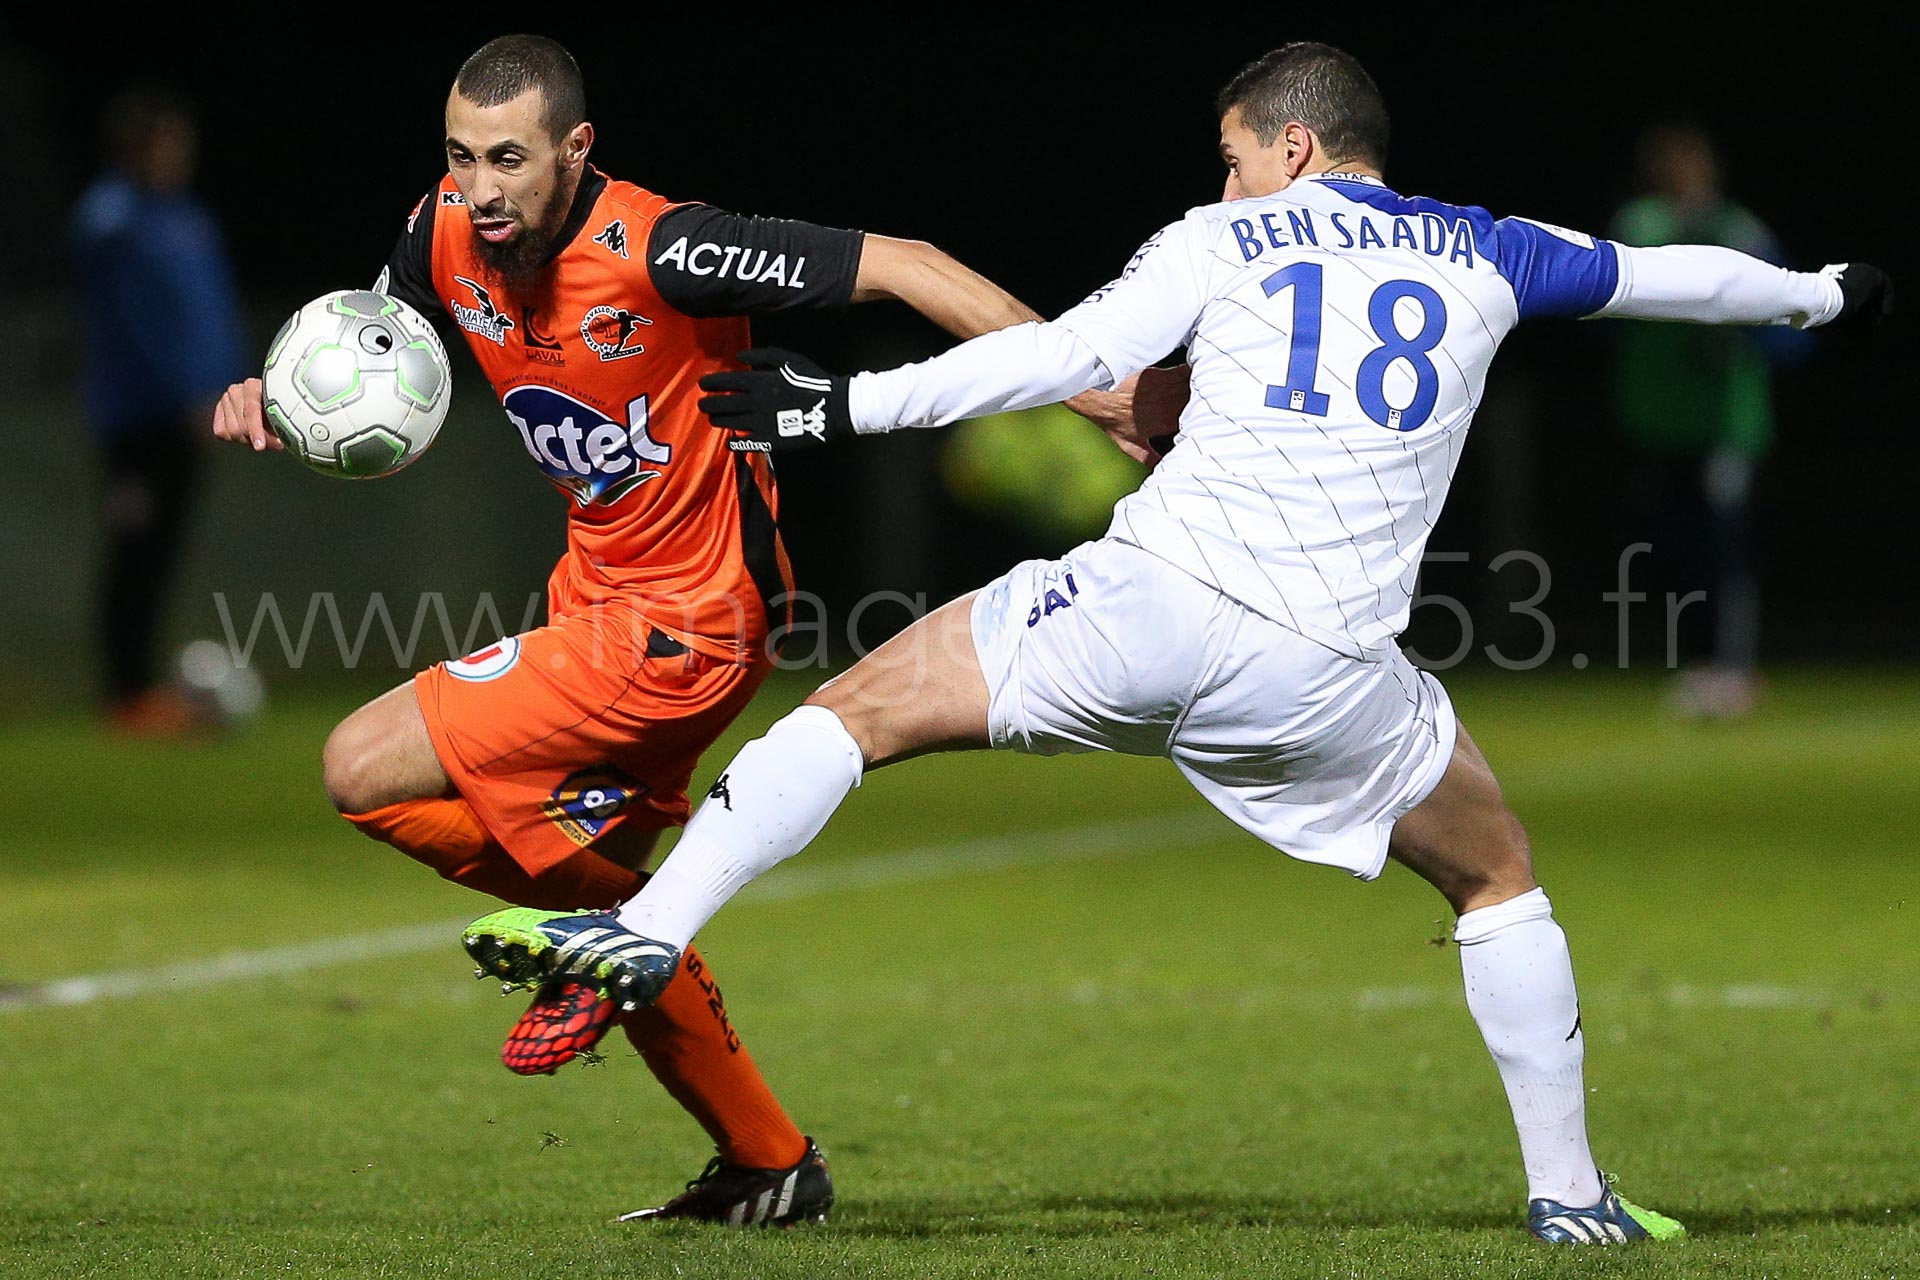 NG-Ligue2-1415-J22-Laval-Troyes_2